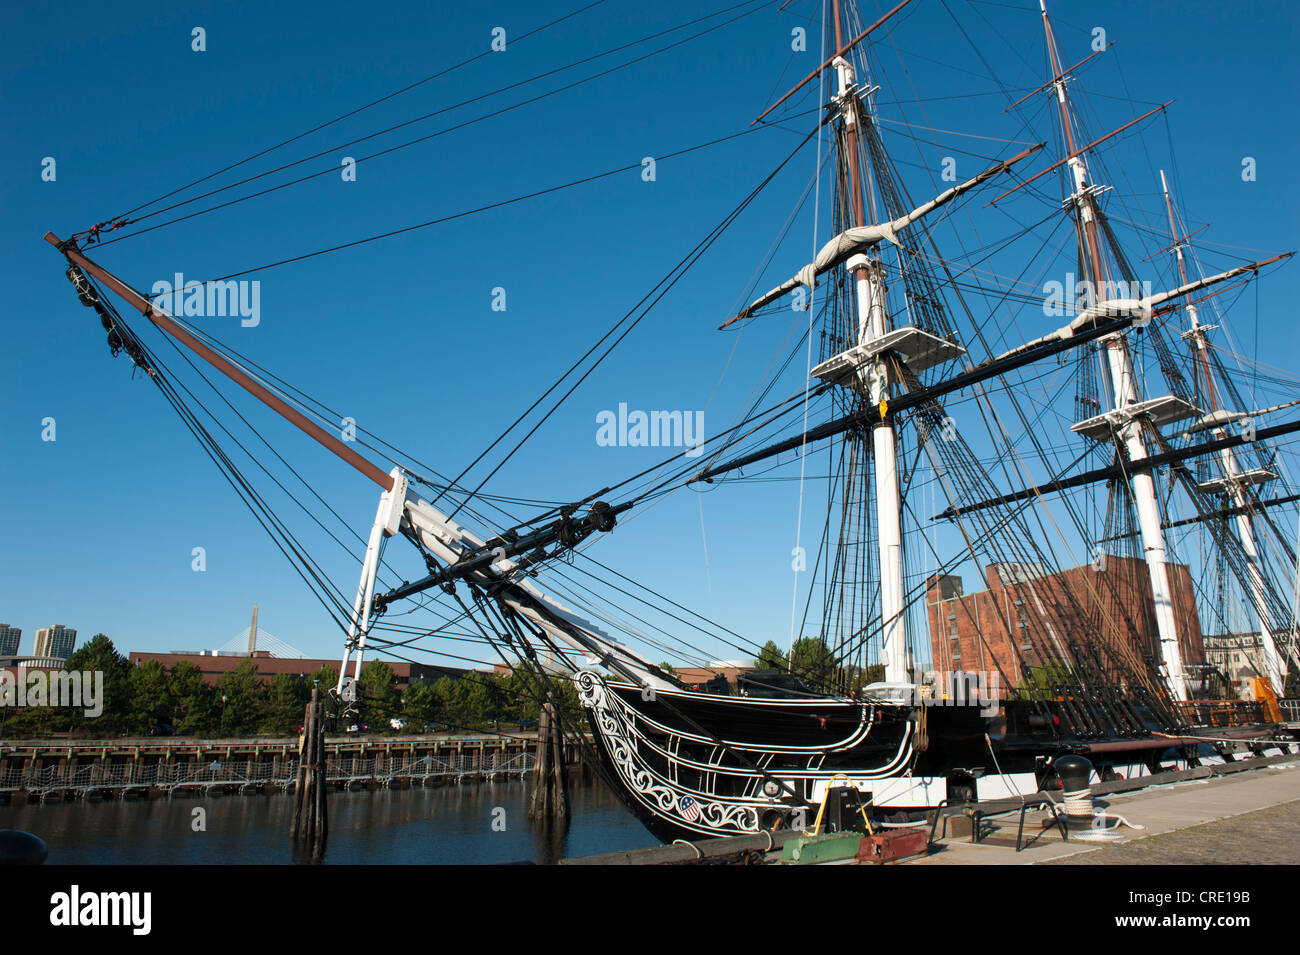 USS Constitution Museum Ship Bow Masts Rigging Frigate US - Ship museums in us